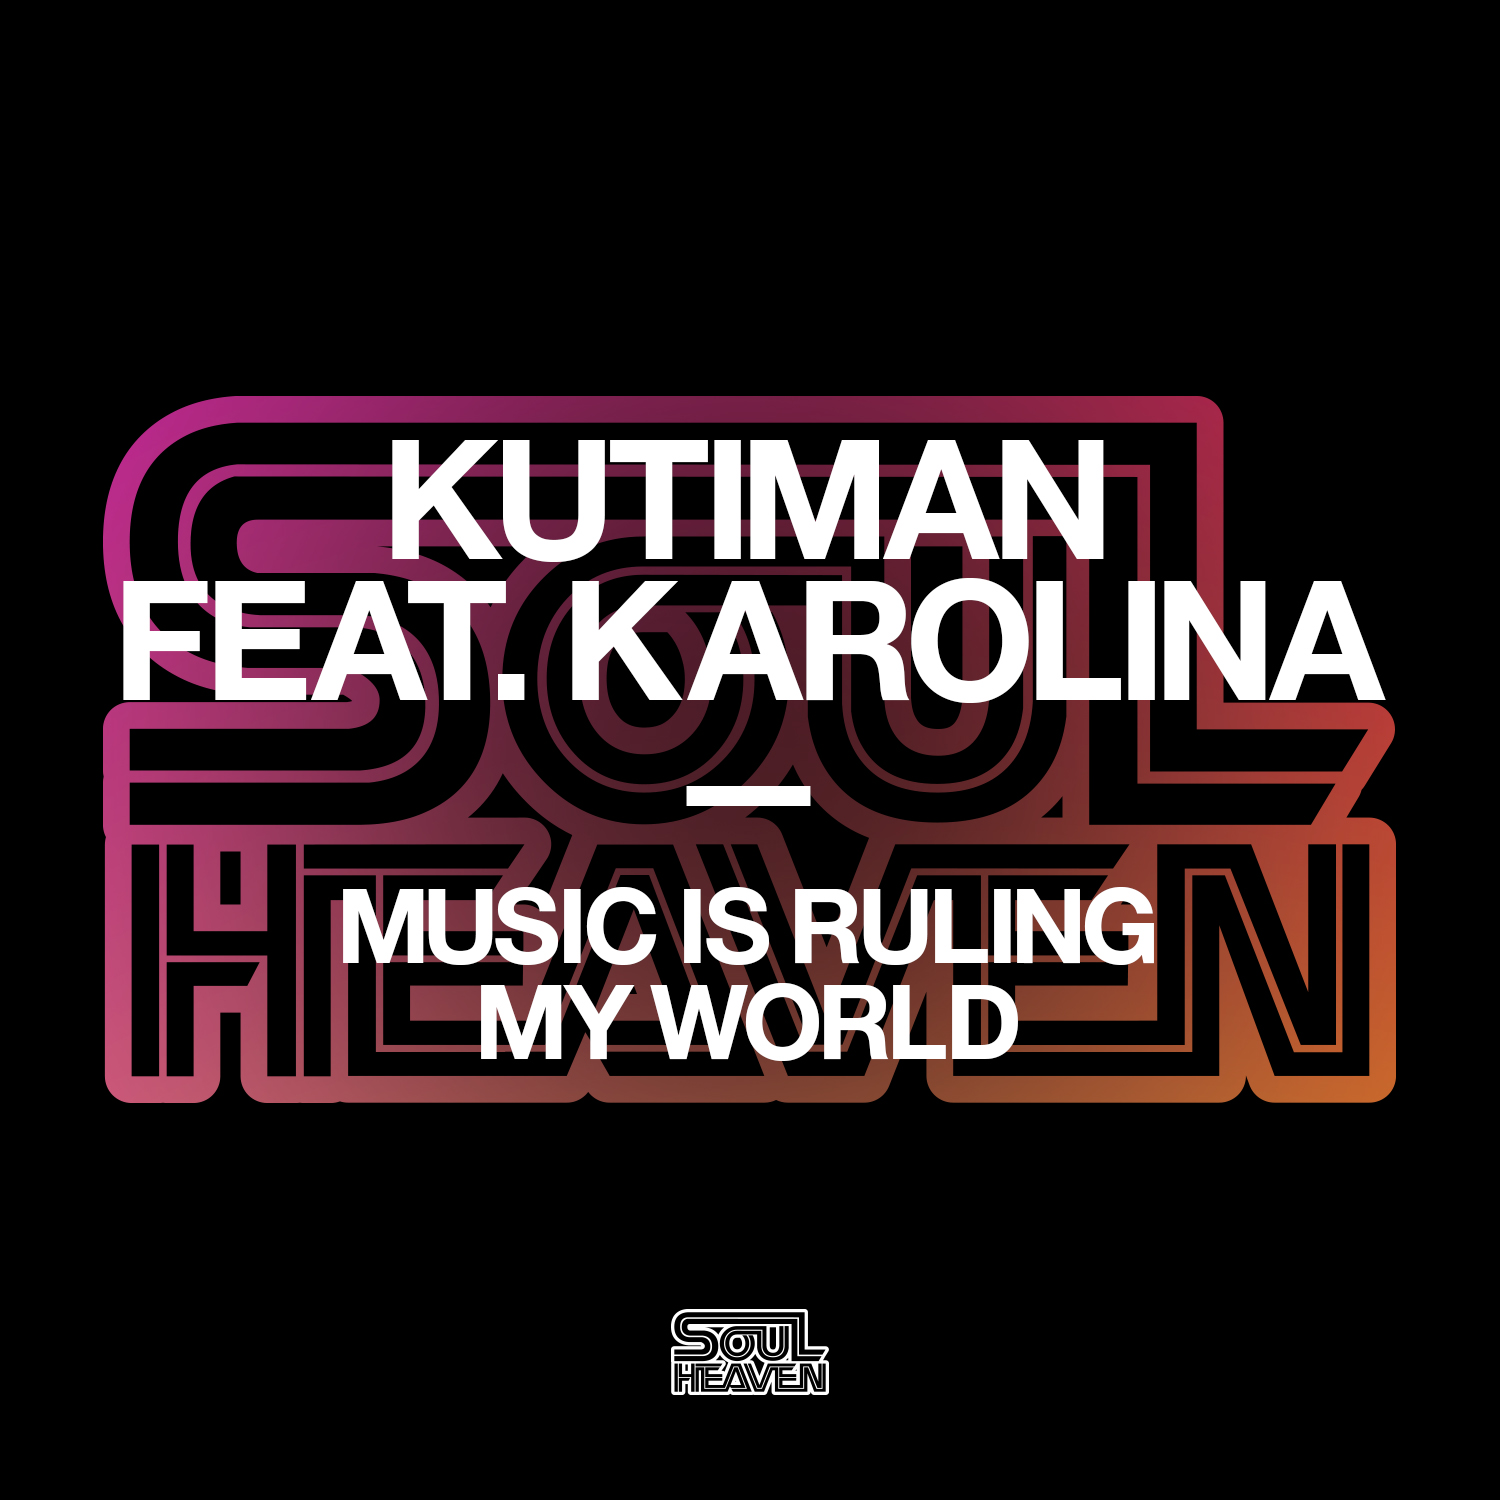 Kutiman featuring Karolina - Music Is Ruling My World